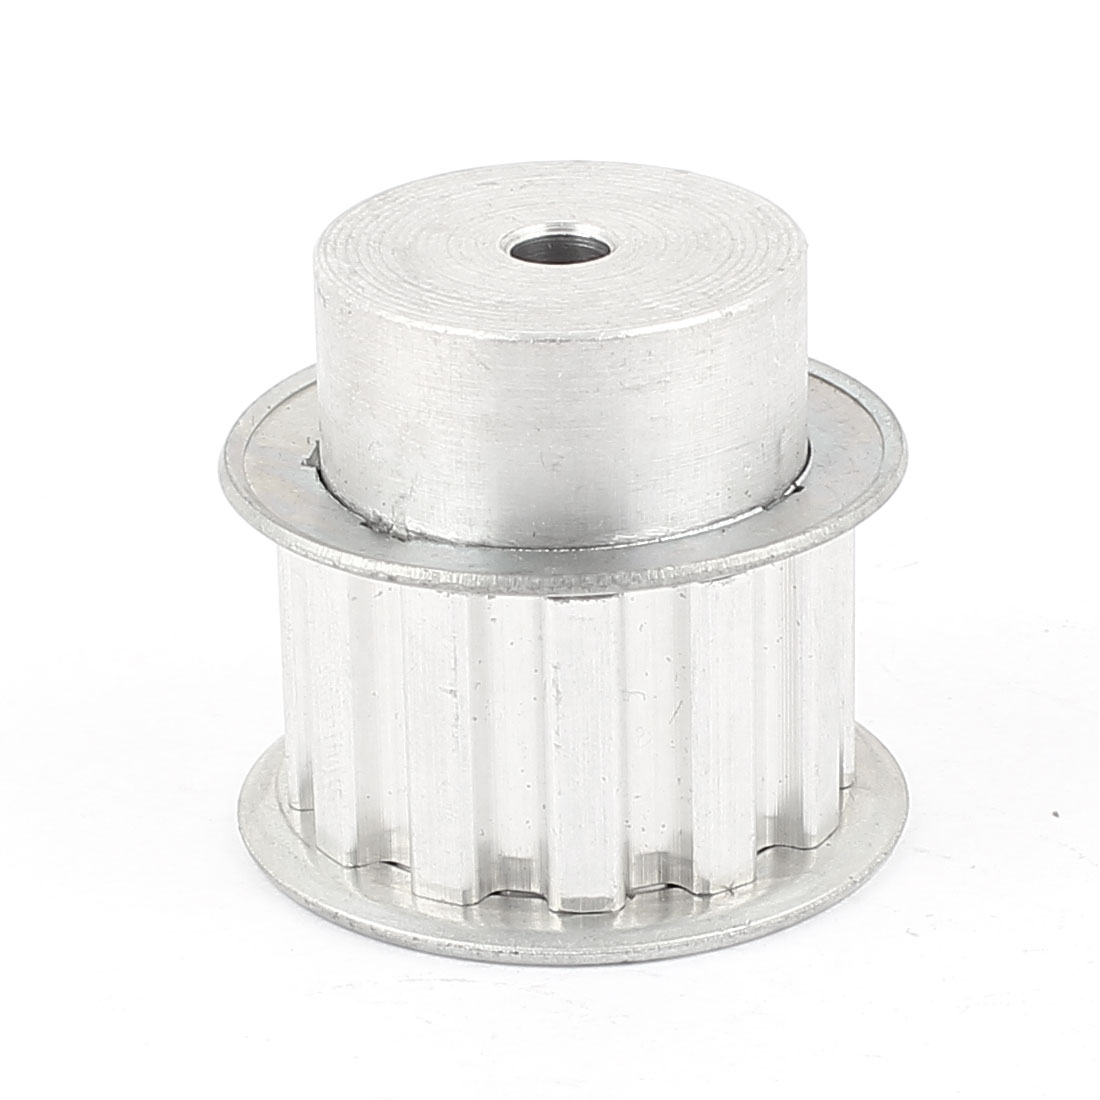 L12 12 Teeth 9.525mm Pitch 6mm Bore 21mm Belt Width Aluminum Synchronous Timing Pulley for Milling Machine